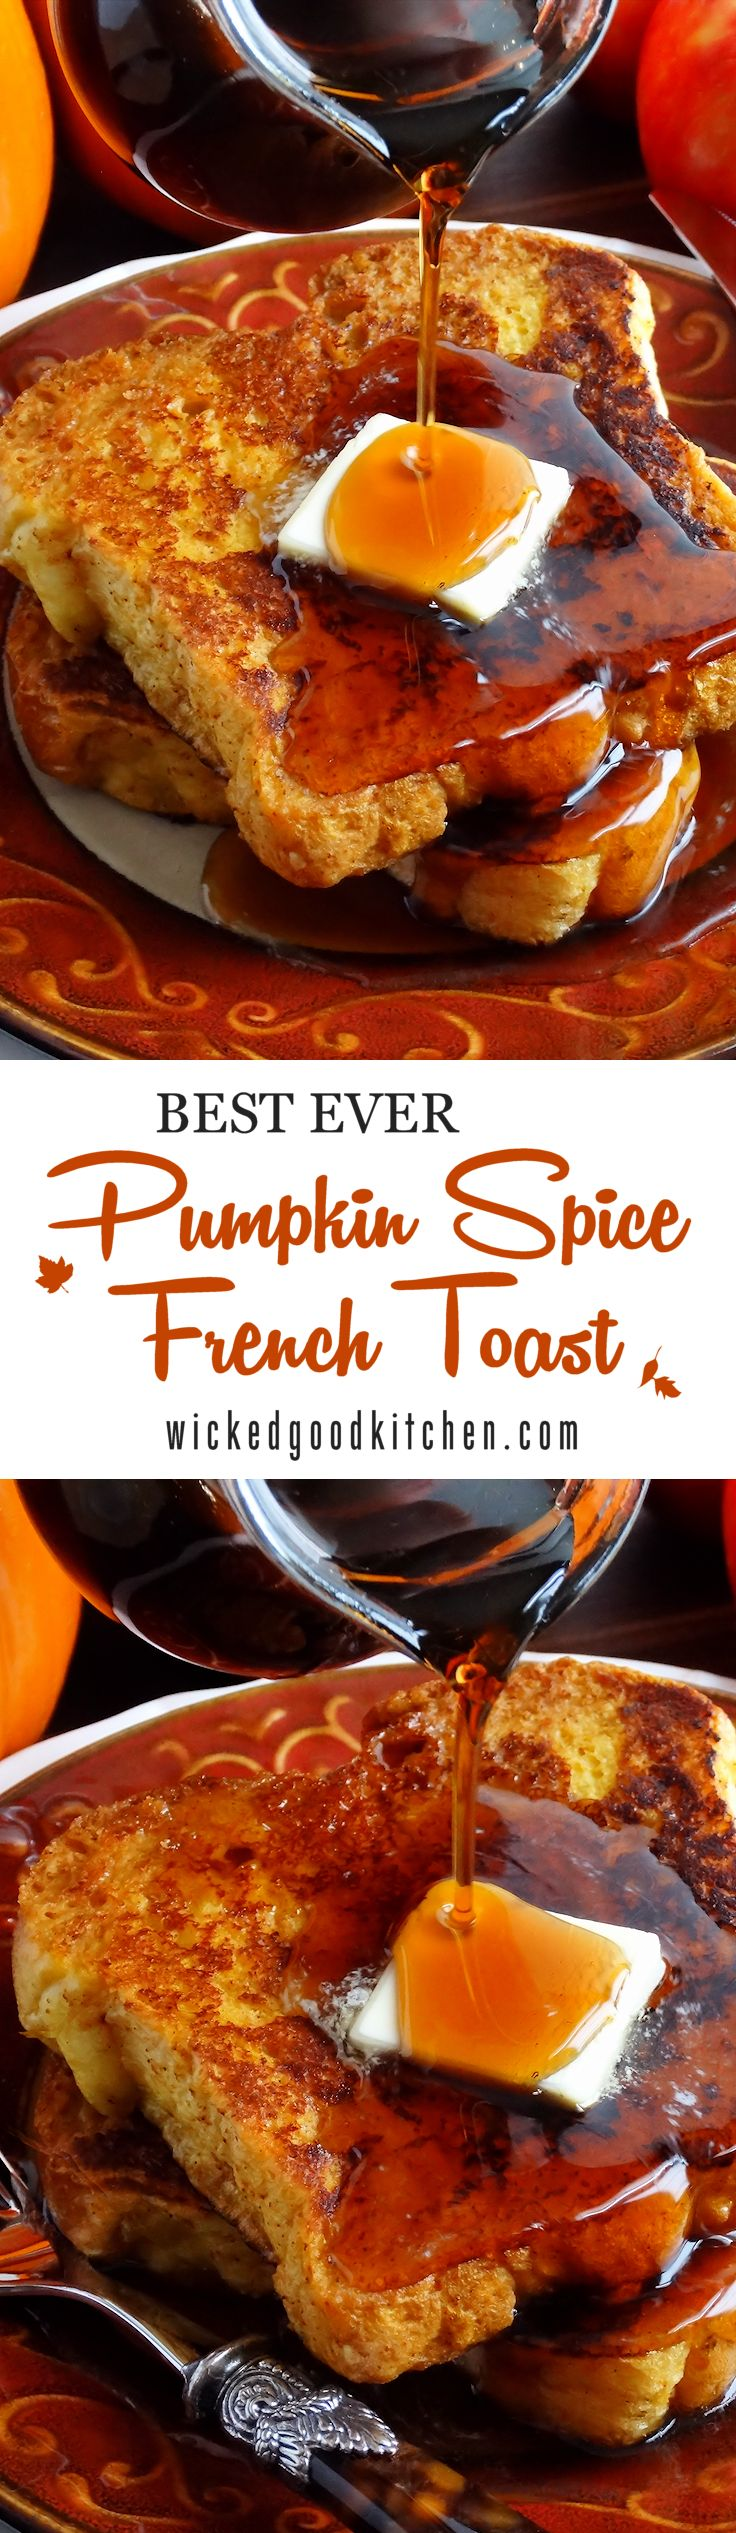 Best Ever Pumpkin Spice French Toast